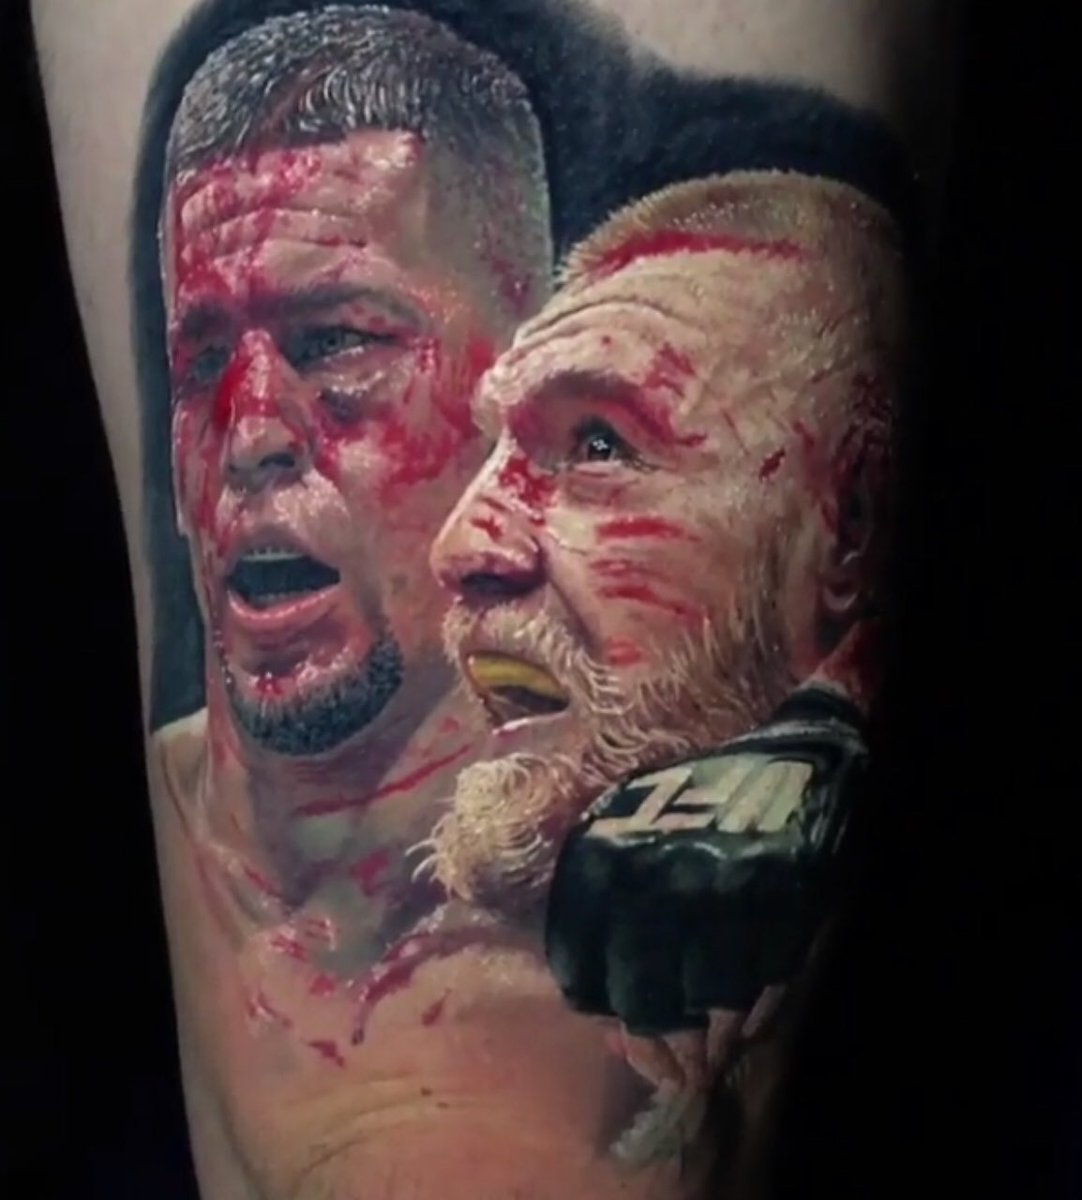 Darren Rovell On Twitter Nate Diaz Conor Mcgregor Tattoo